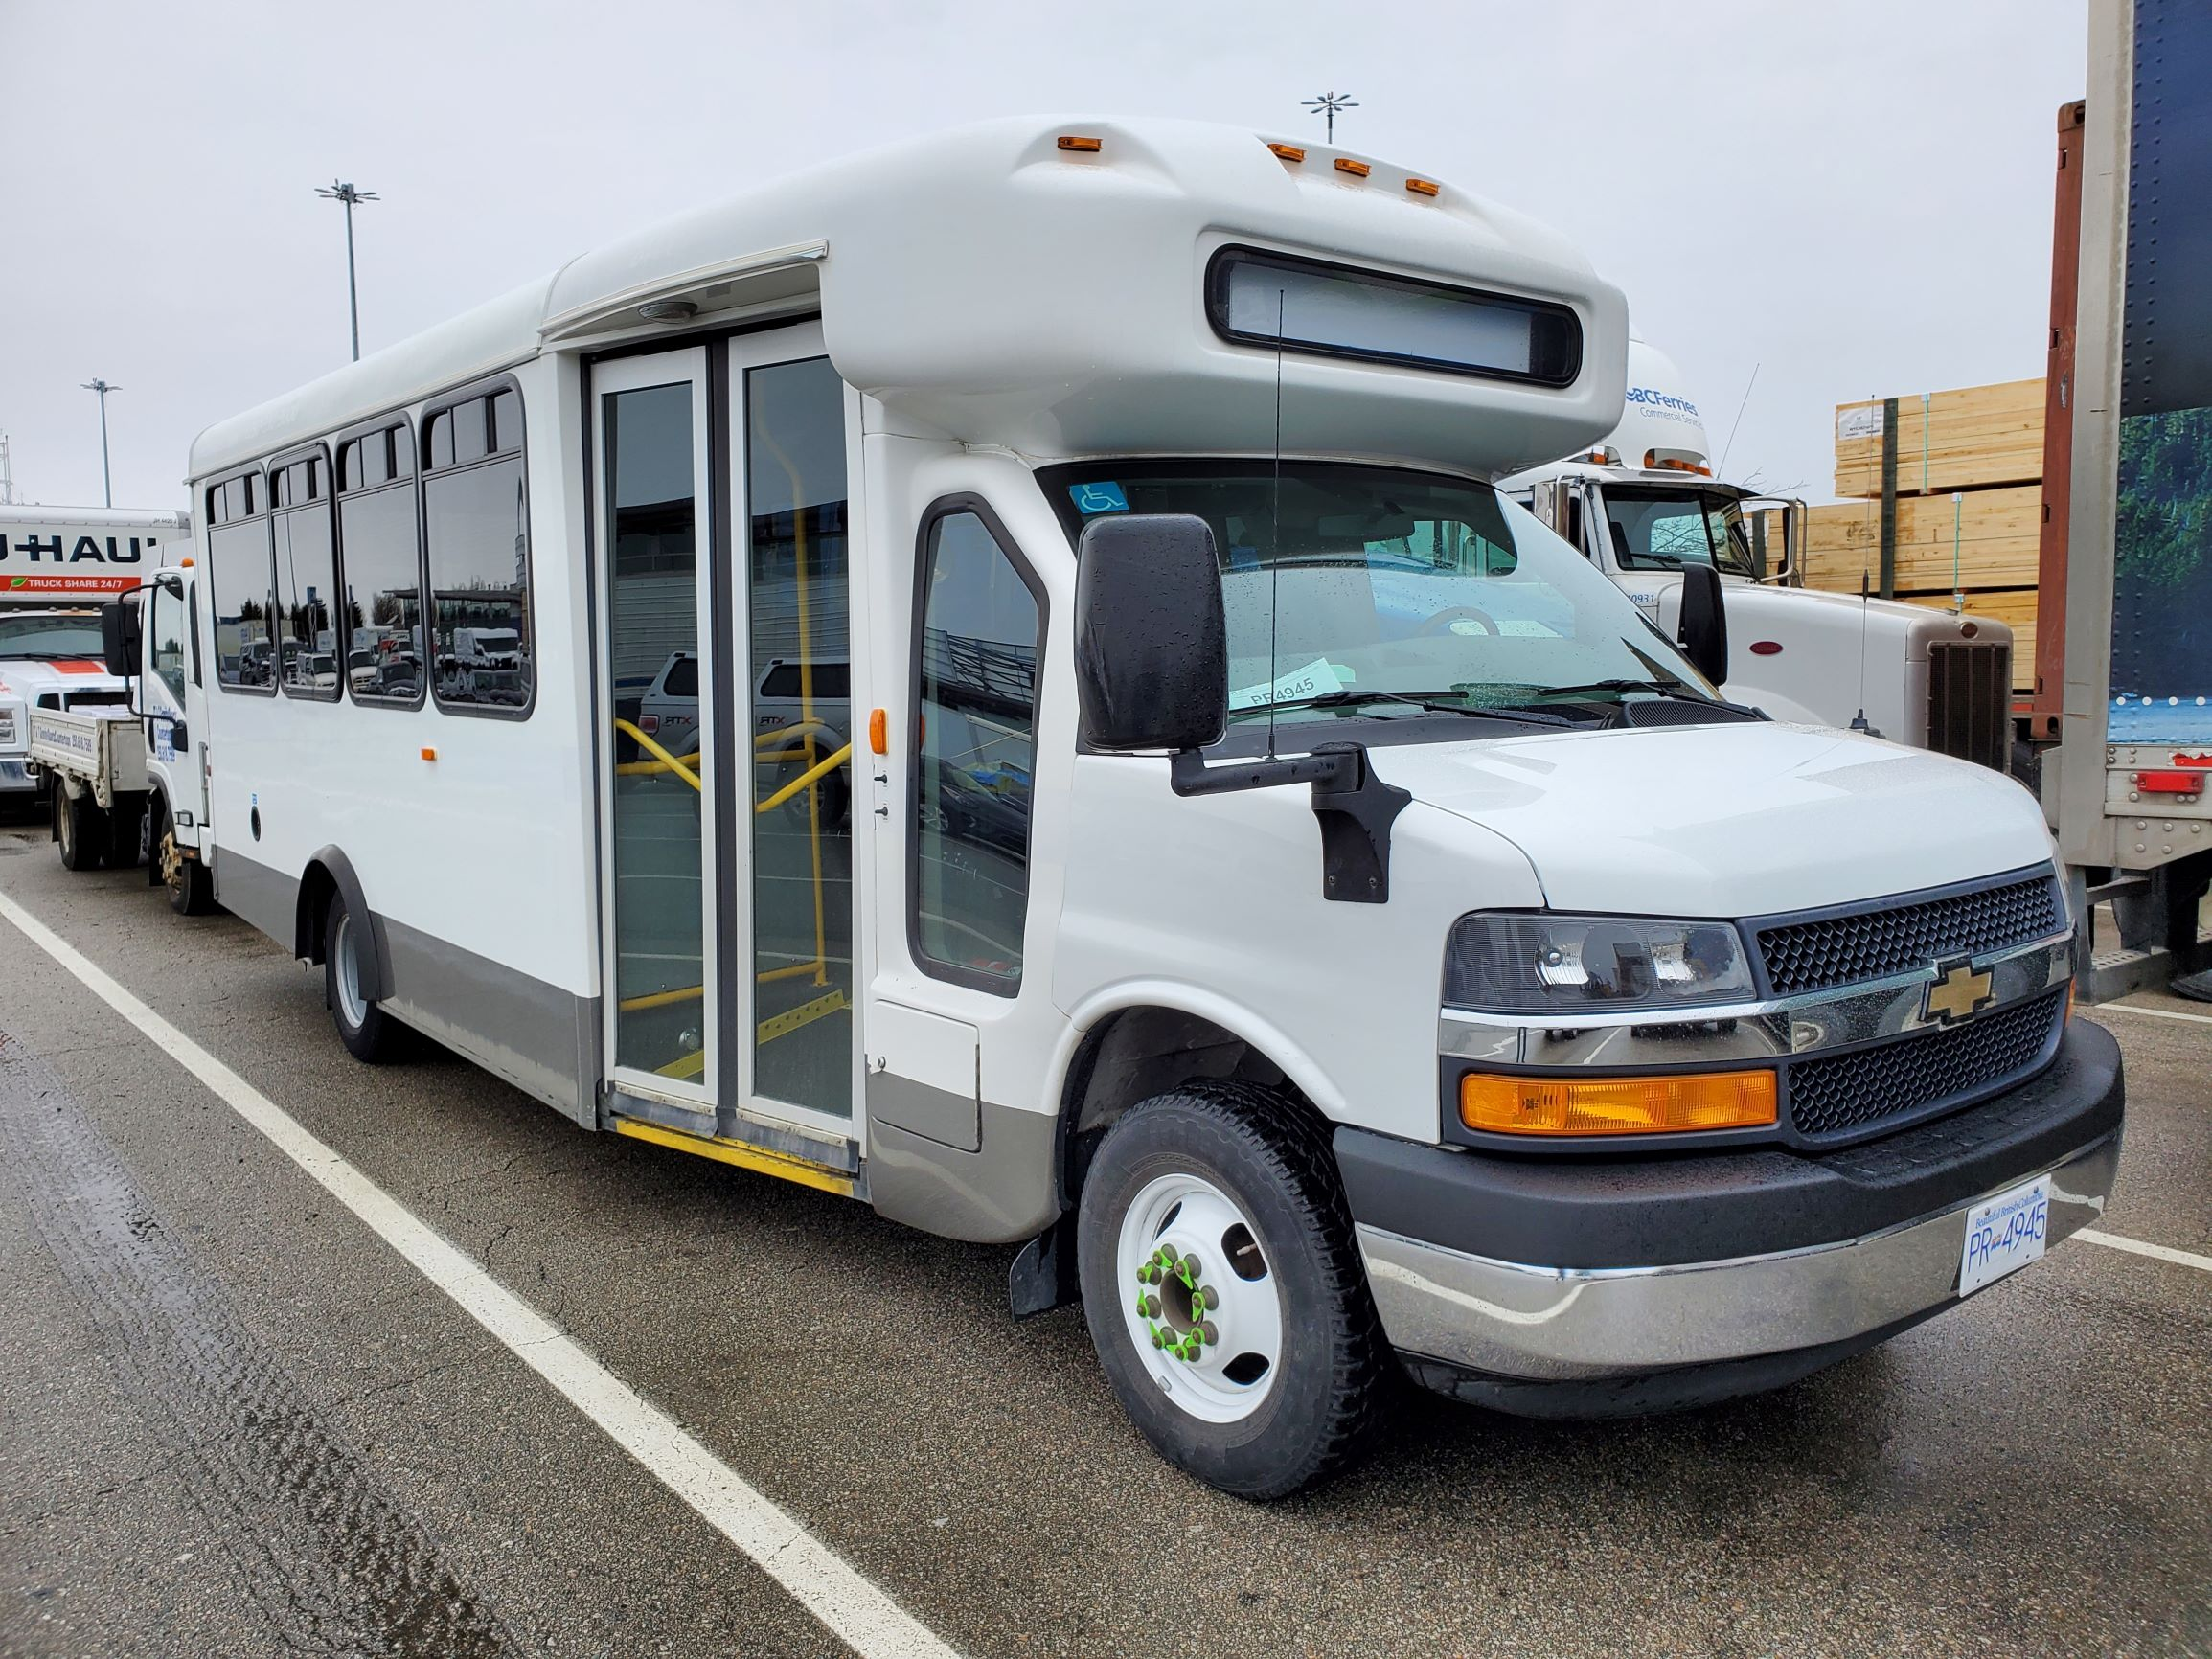 This is GERTIE's beautiful new (to us) bus, that will replace the one that got hit by a tree.  We need your help to give it a name, and you can make some suggestions below.